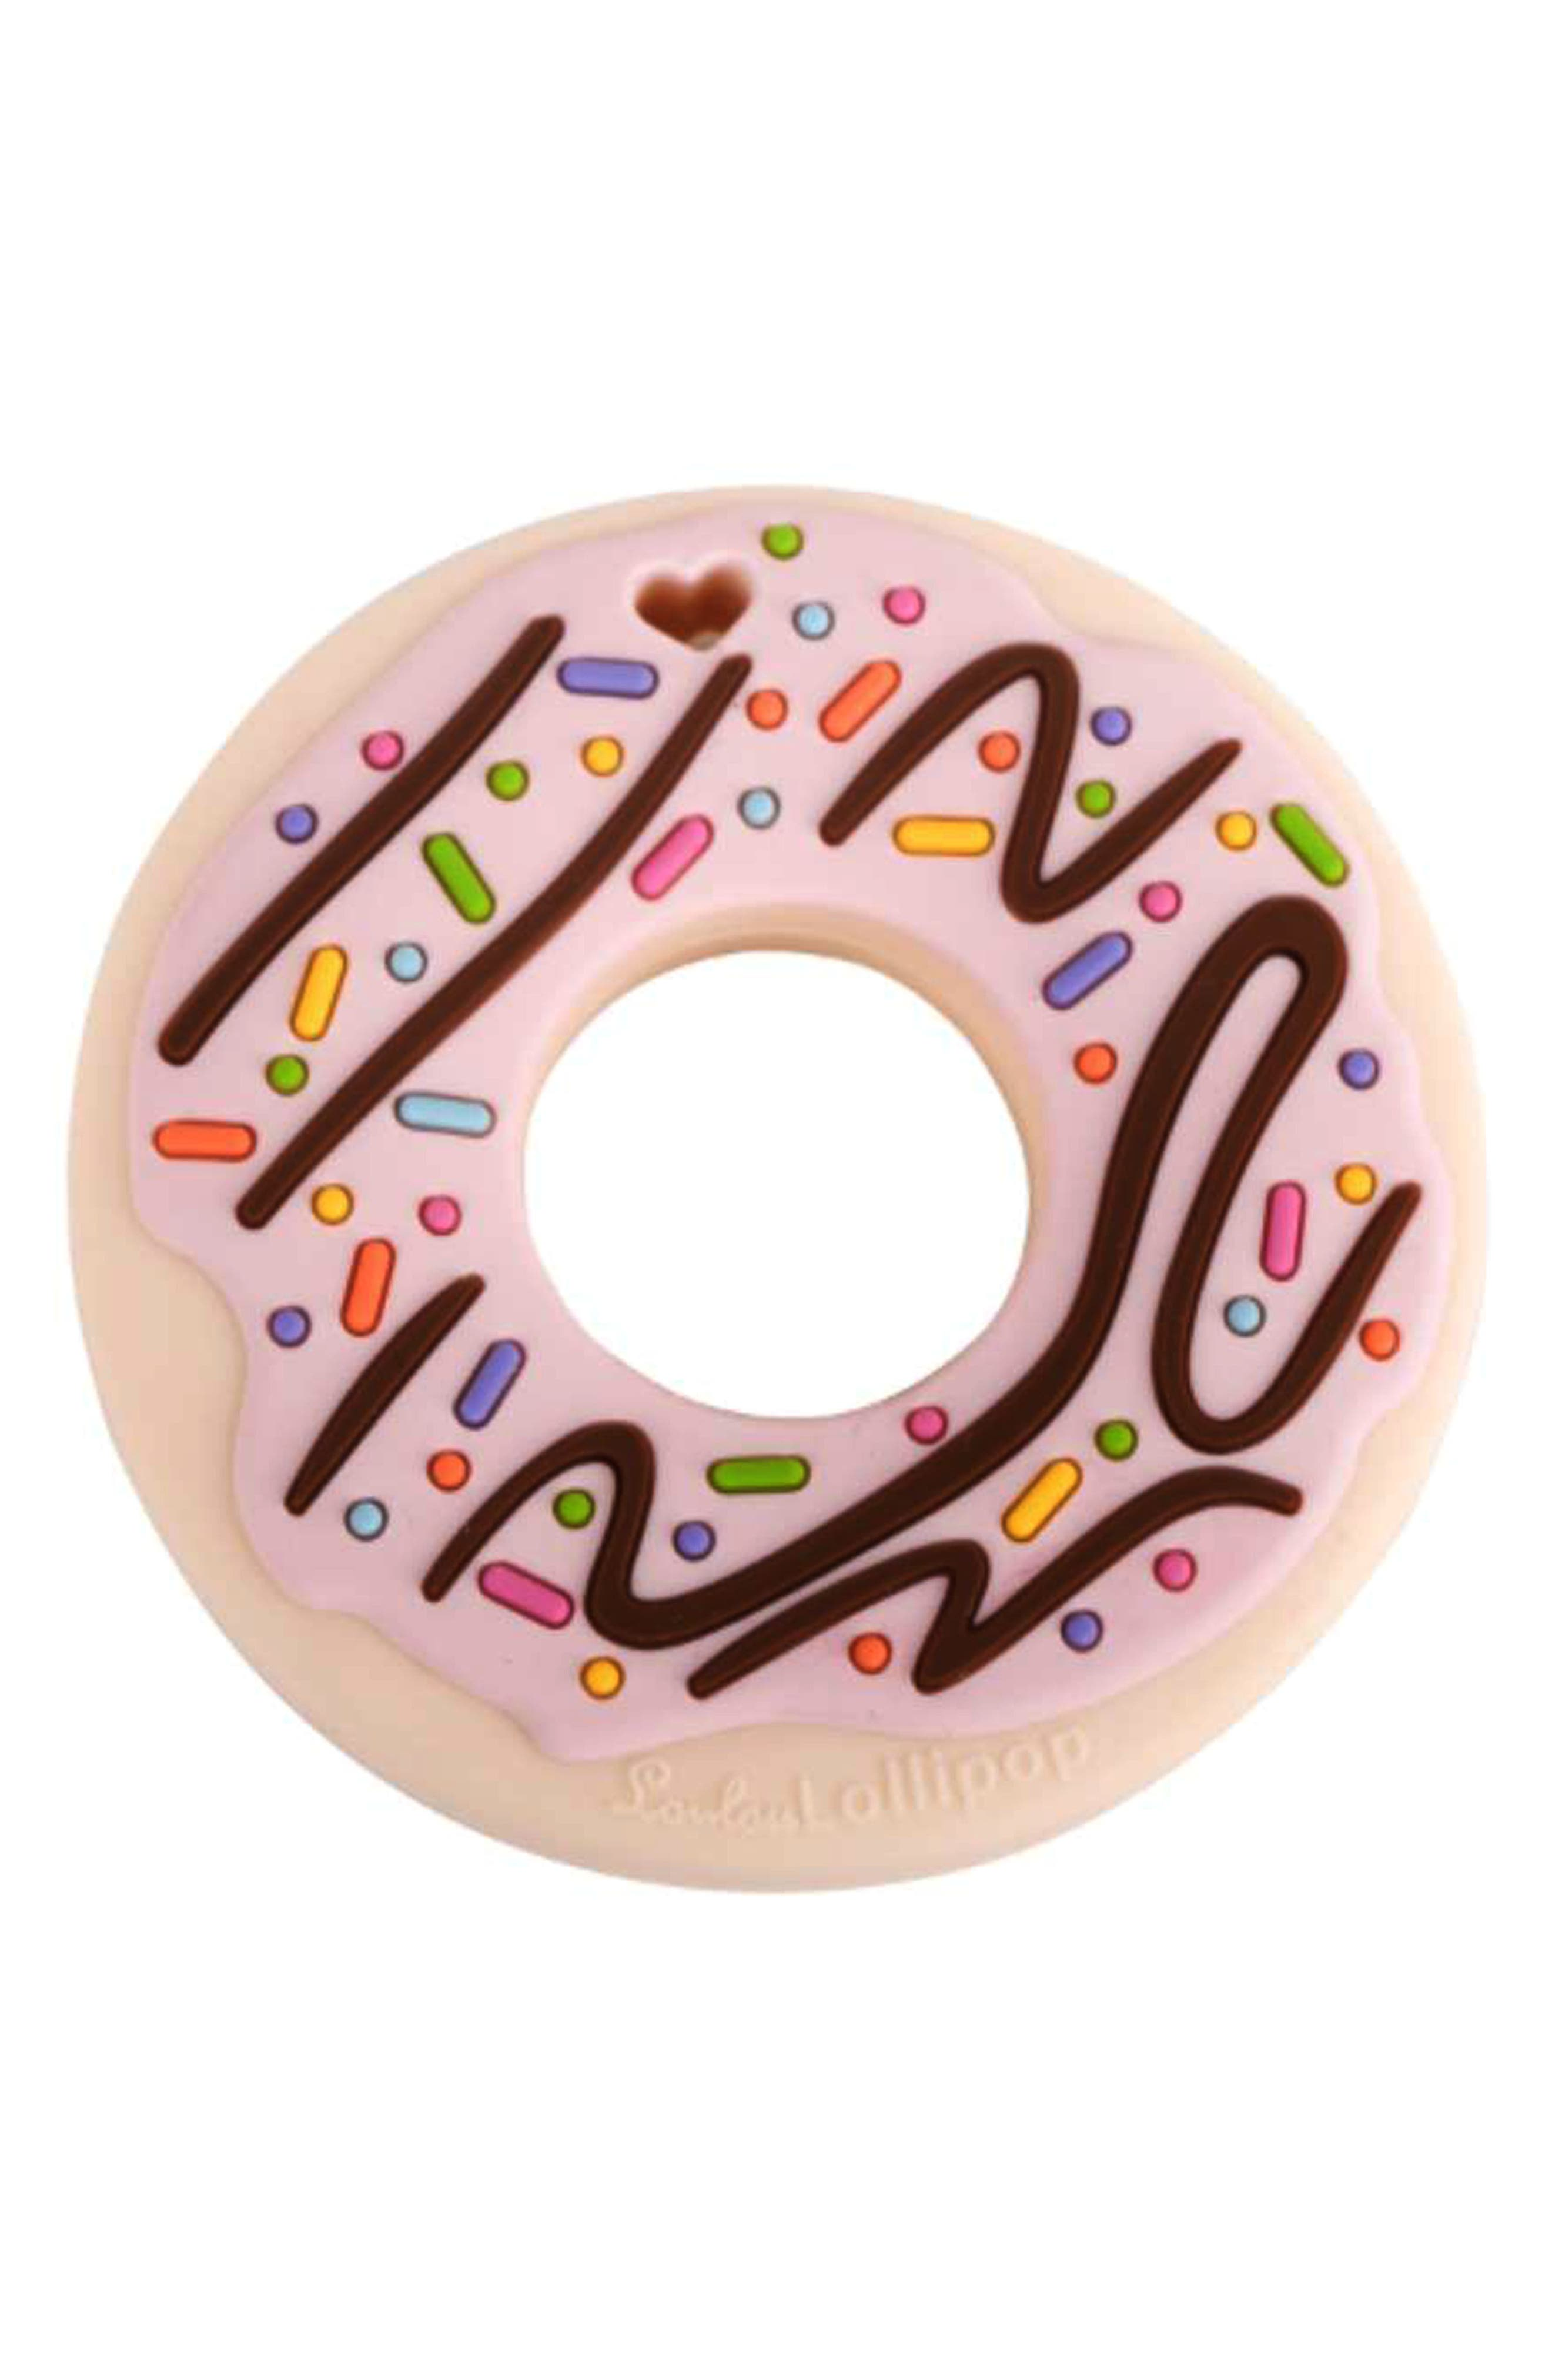 LOULOU LOLLIPOP,                             Donut Teething Toy,                             Alternate thumbnail 2, color,                             650